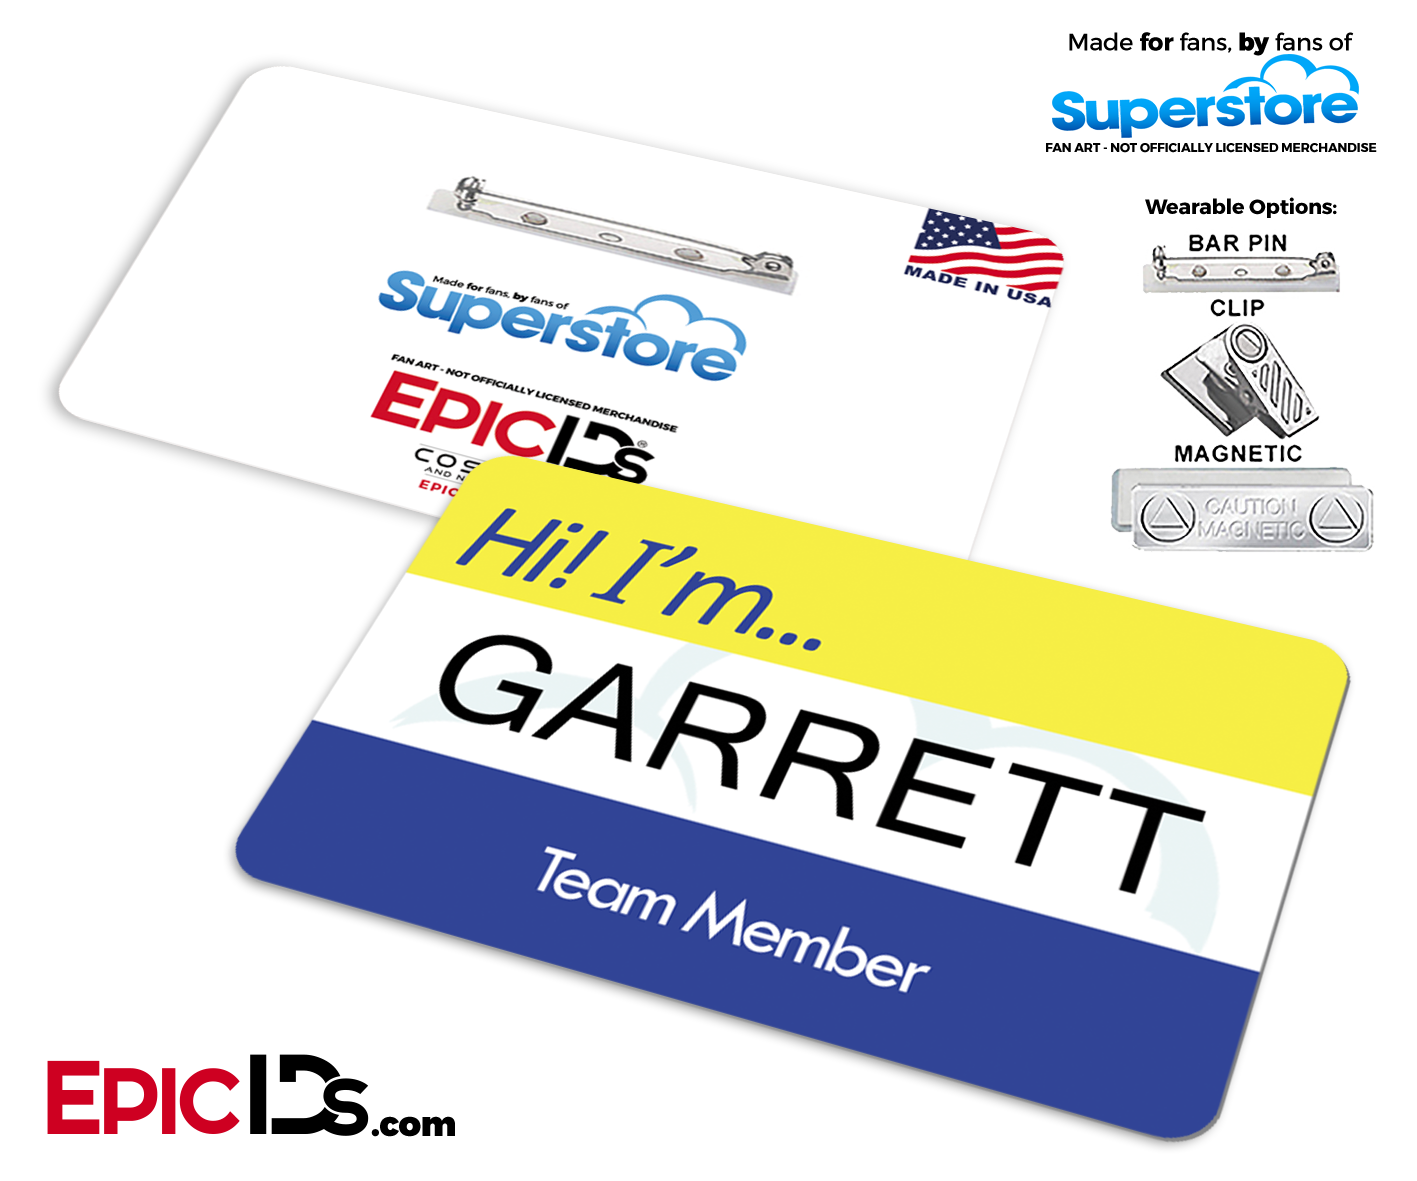 Superstore clip. Employee name badge wearable